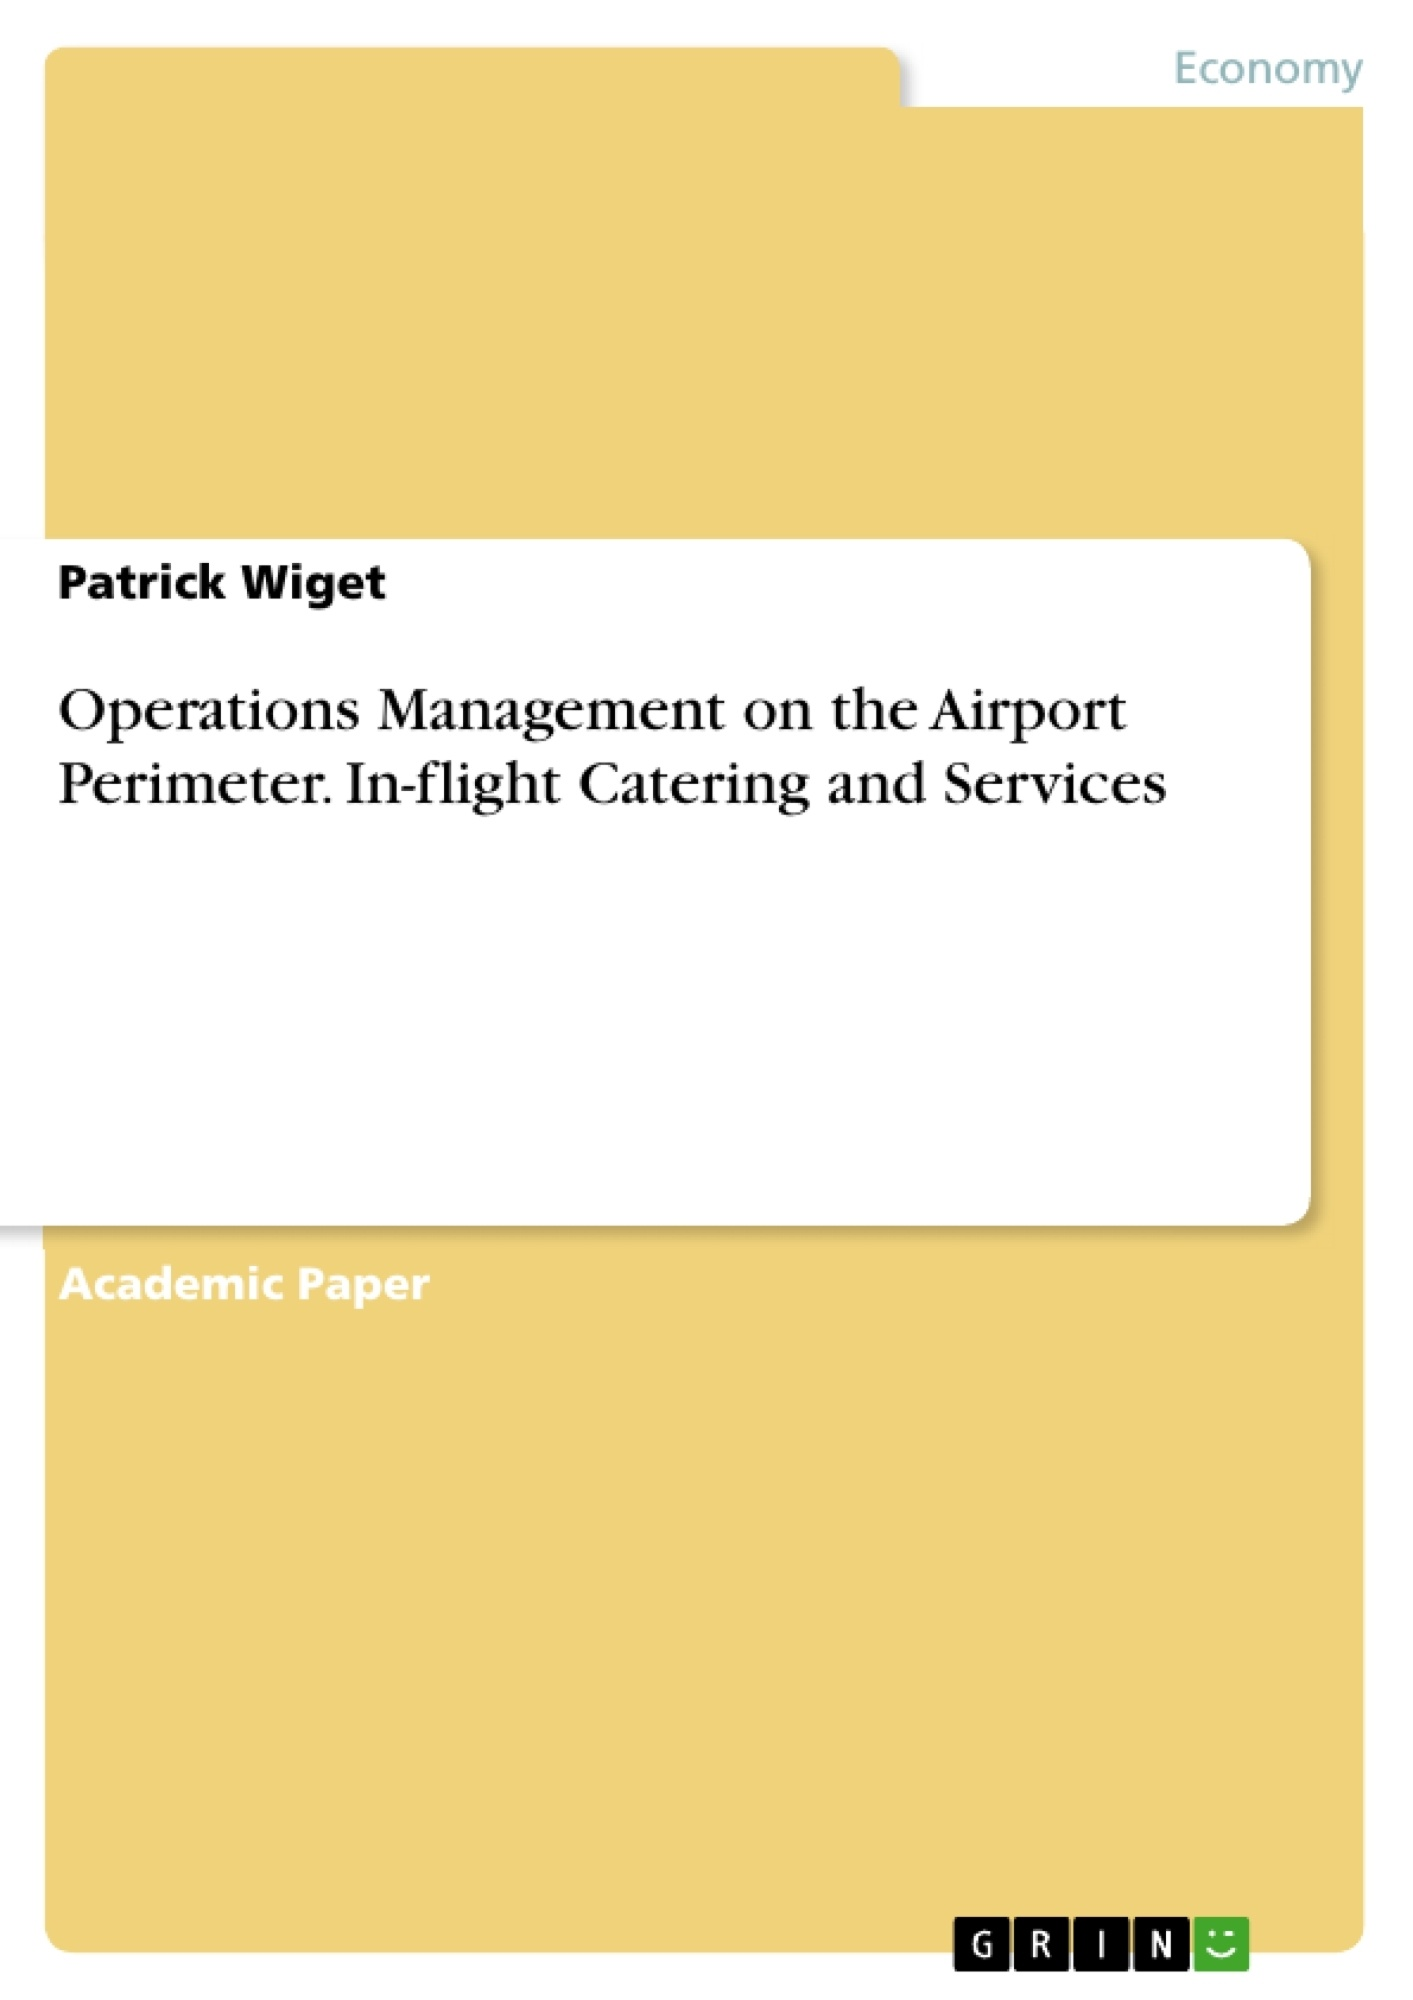 Title: Operations Management on the Airport Perimeter. In-flight Catering and Services